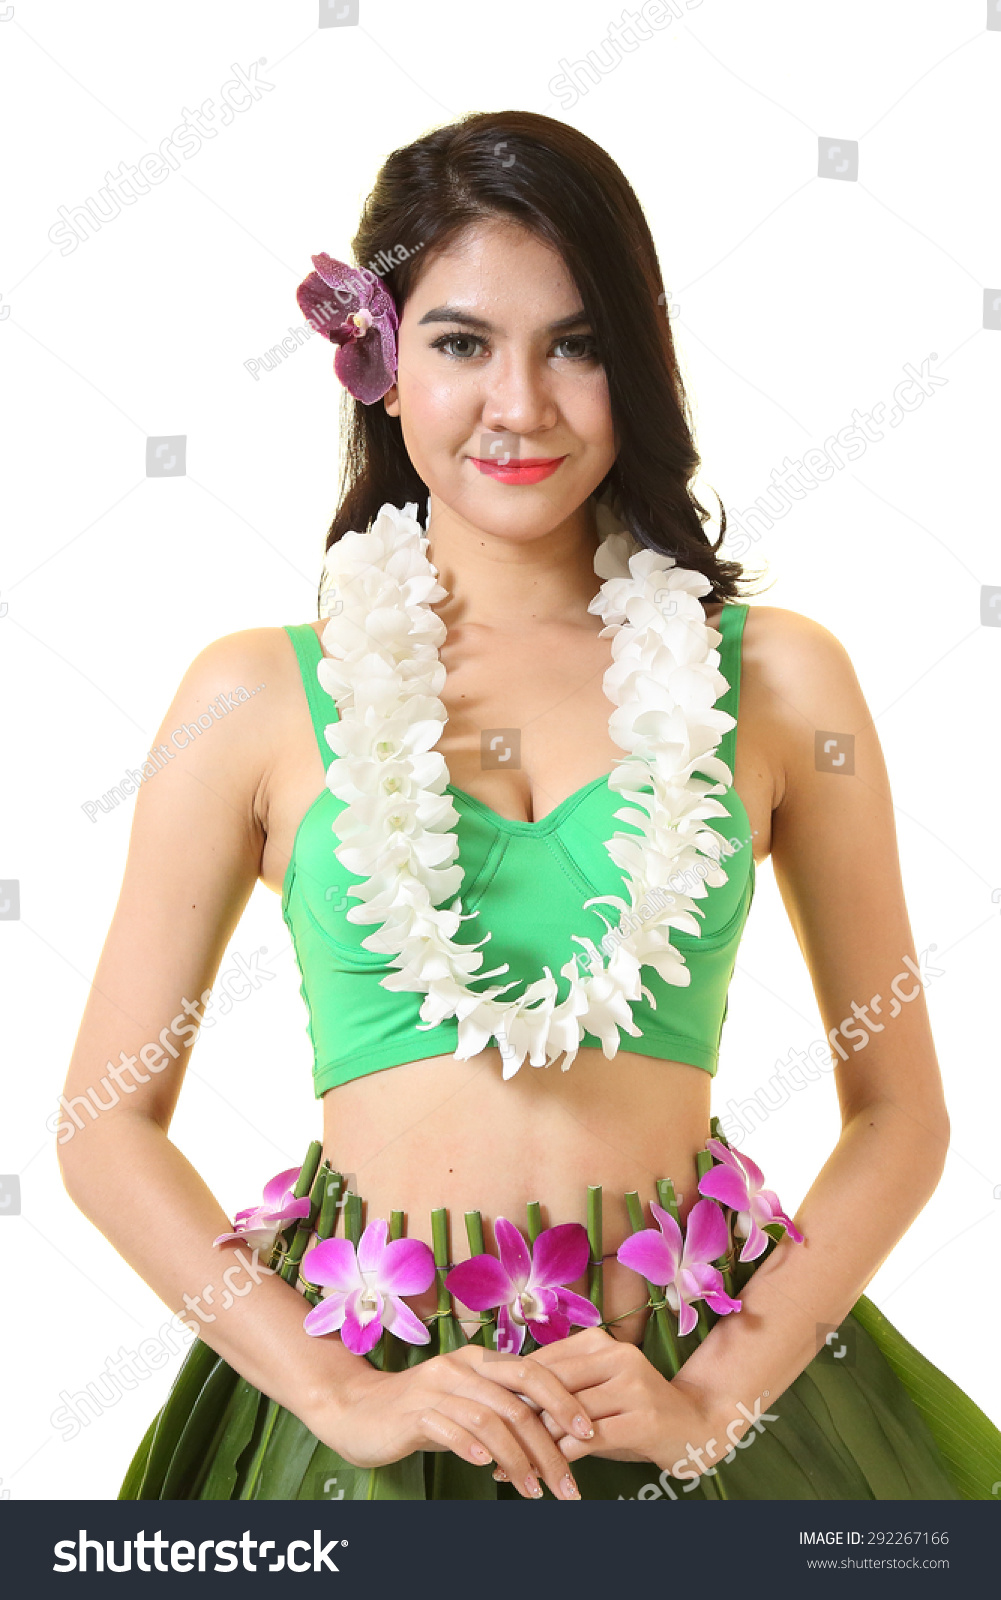 Beautiful woman dress hawaiian style flower stock photo royalty beautiful woman dress in hawaiian style with flower lei garland of white orchids on white background izmirmasajfo